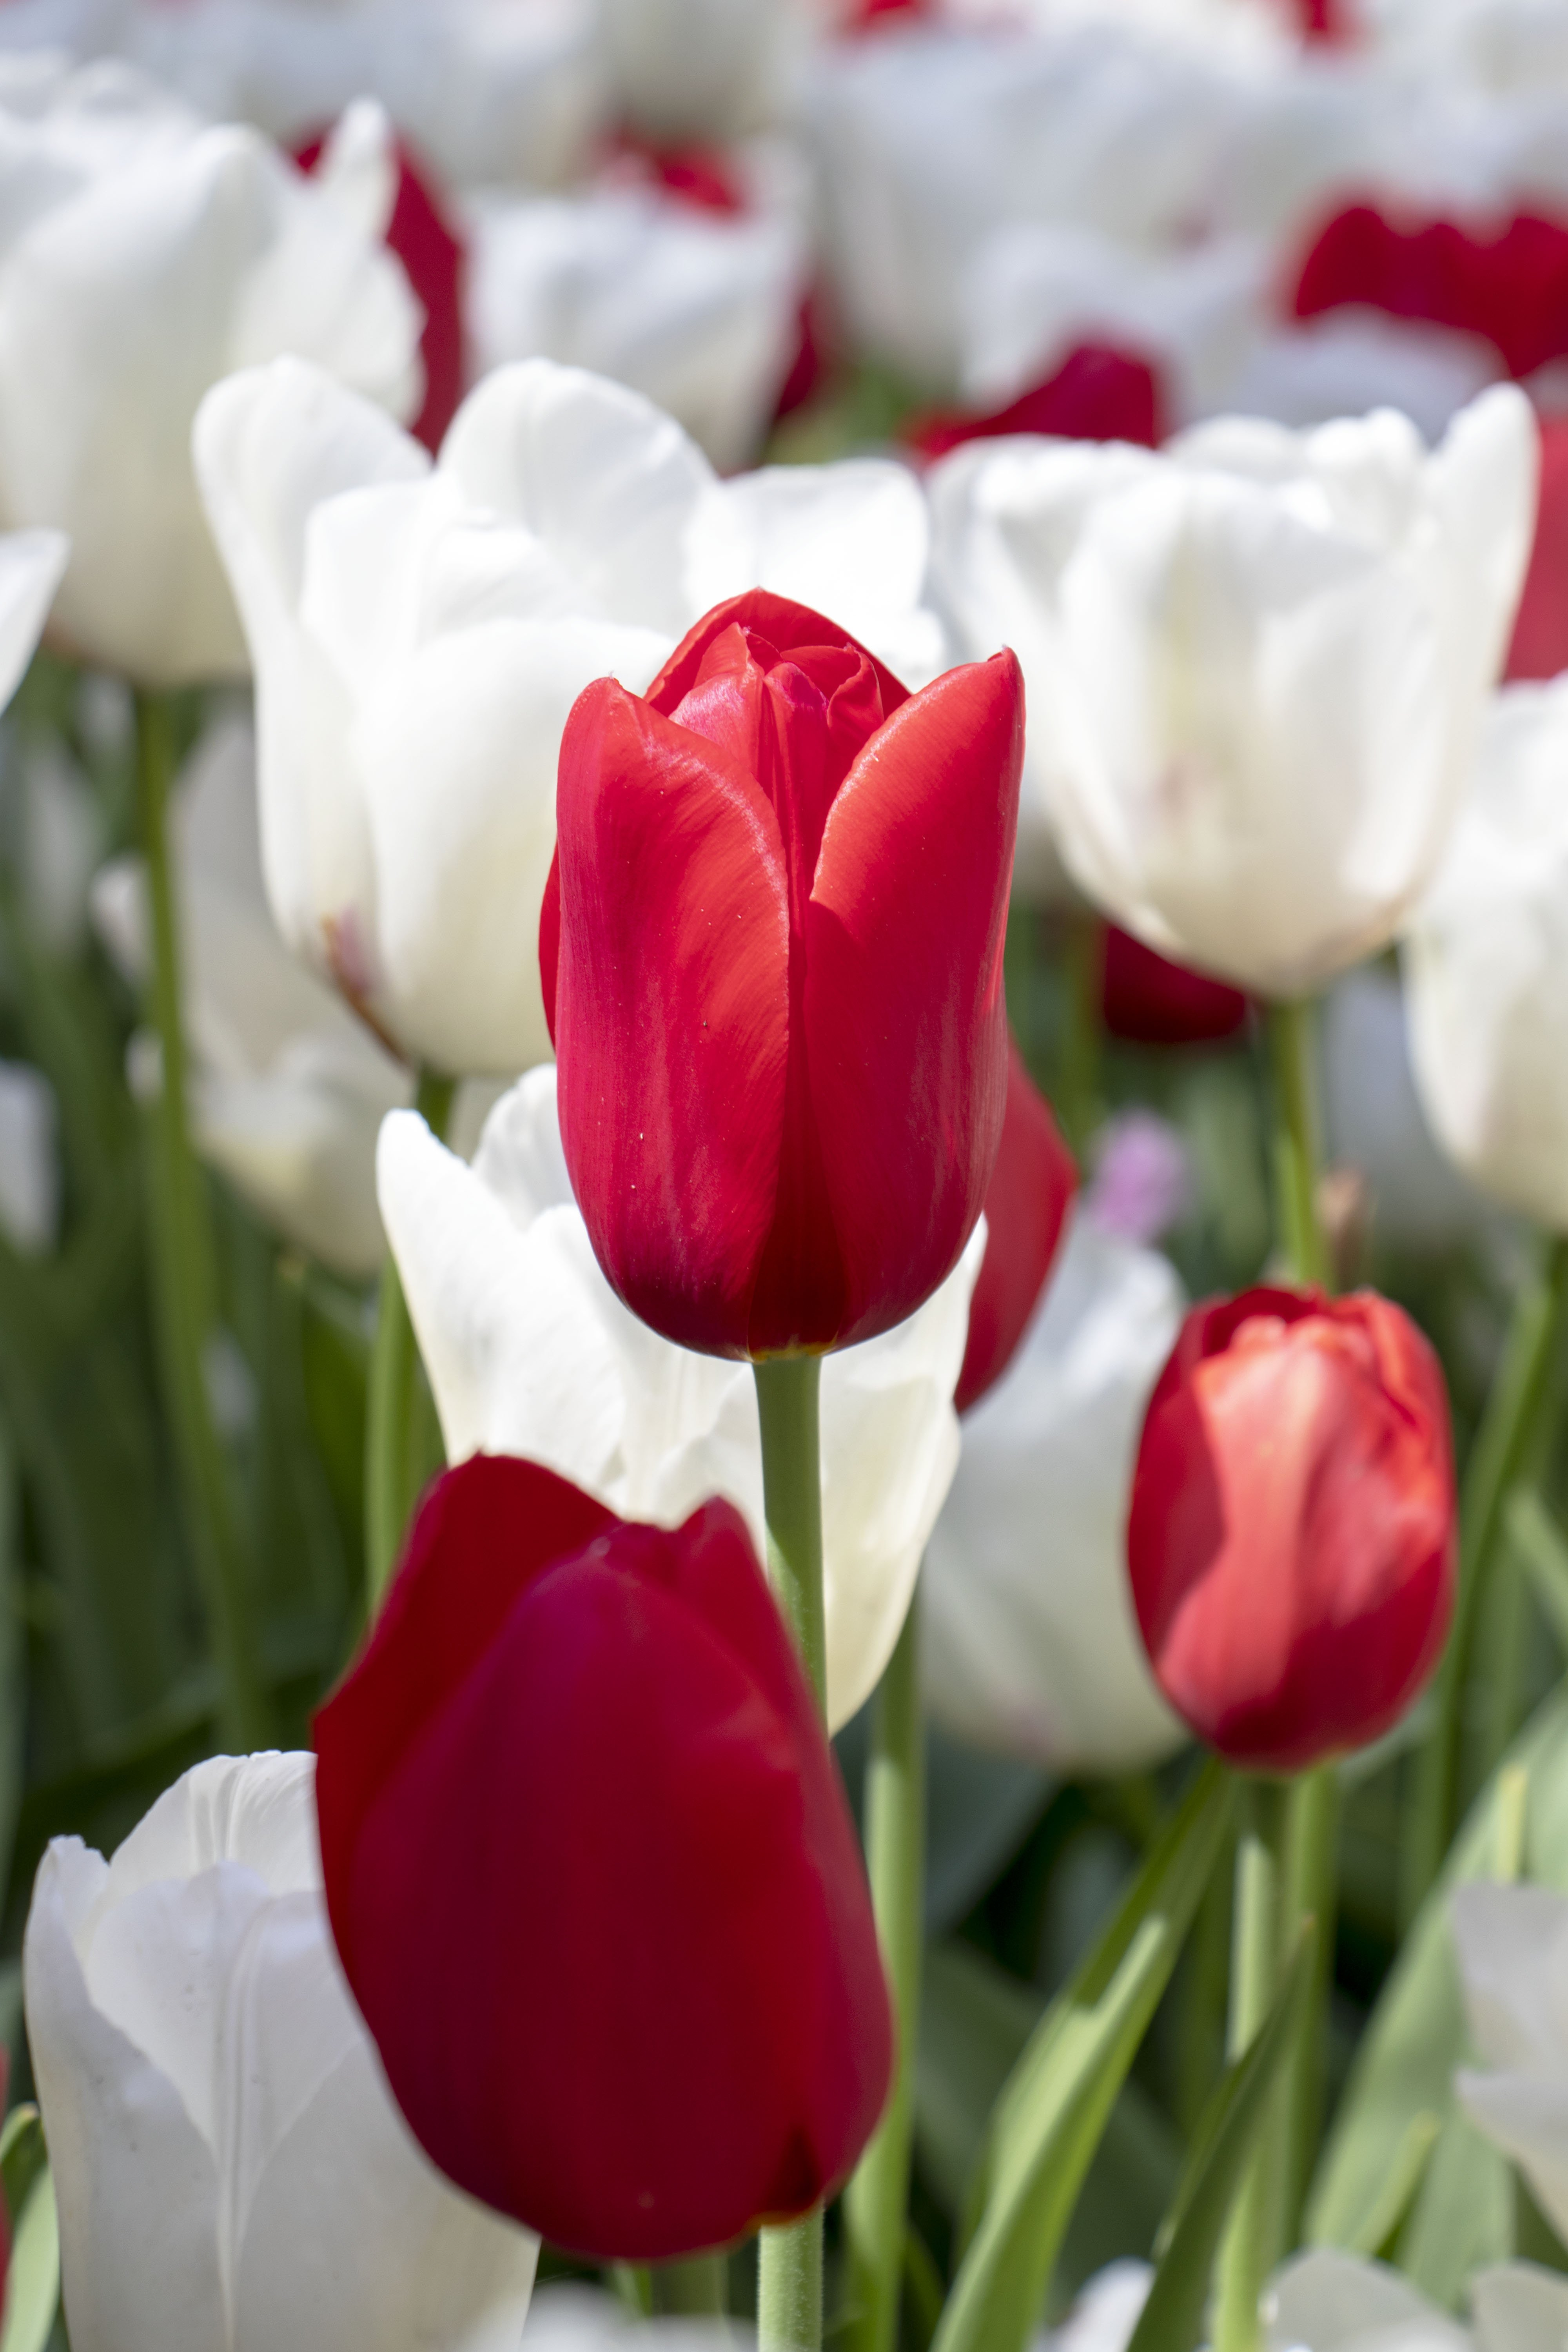 Red and white tulips at Keukenhof, Lisse, Netherlands